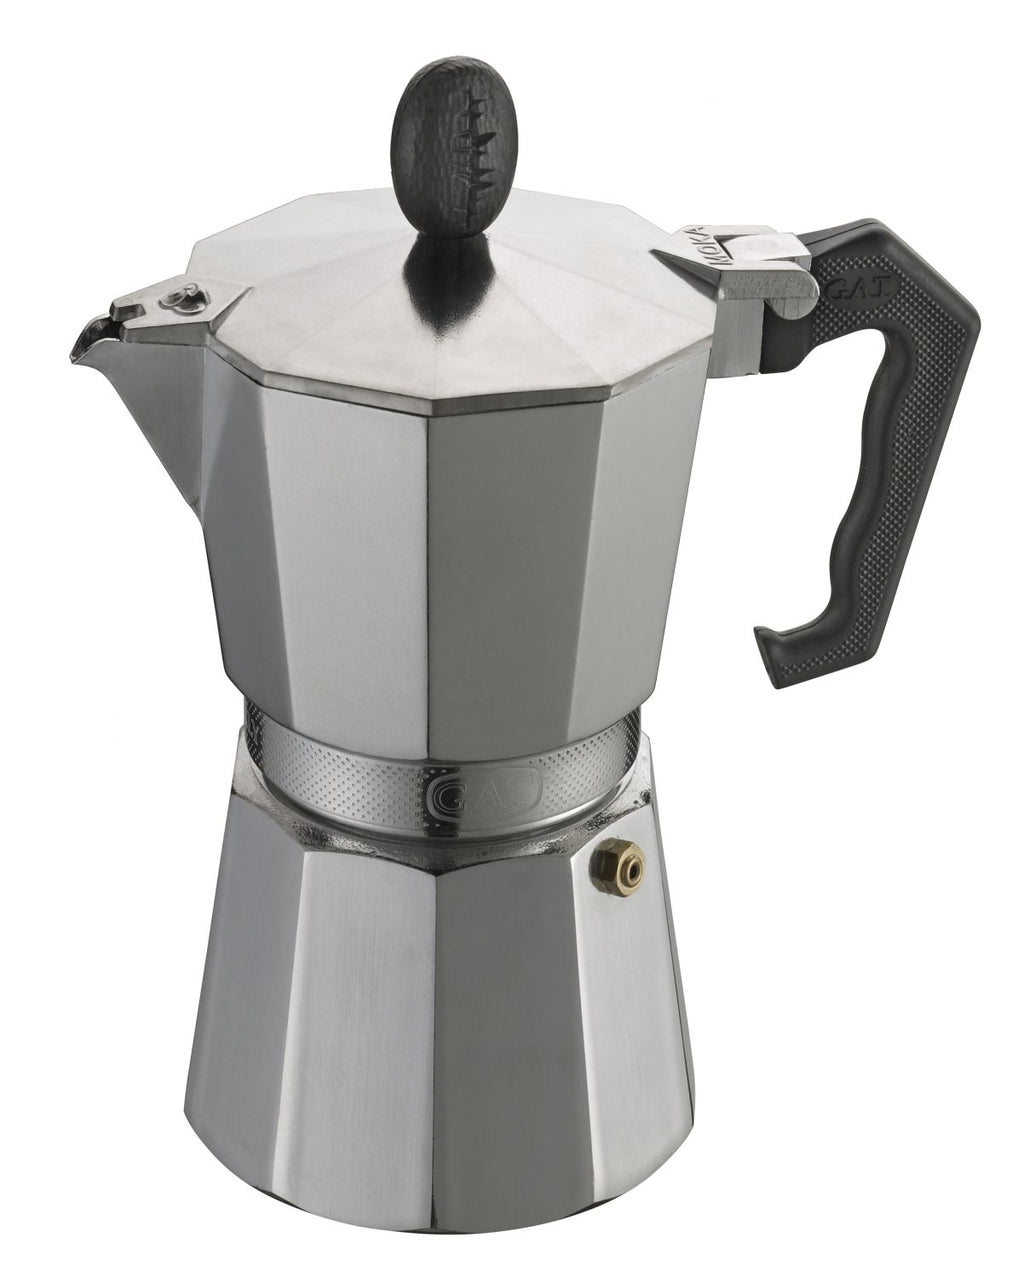 GAT - Lady Oro Aluminium Moka Stove Top Coffee Espresso Maker - for All Stove Tops - 24 Cups